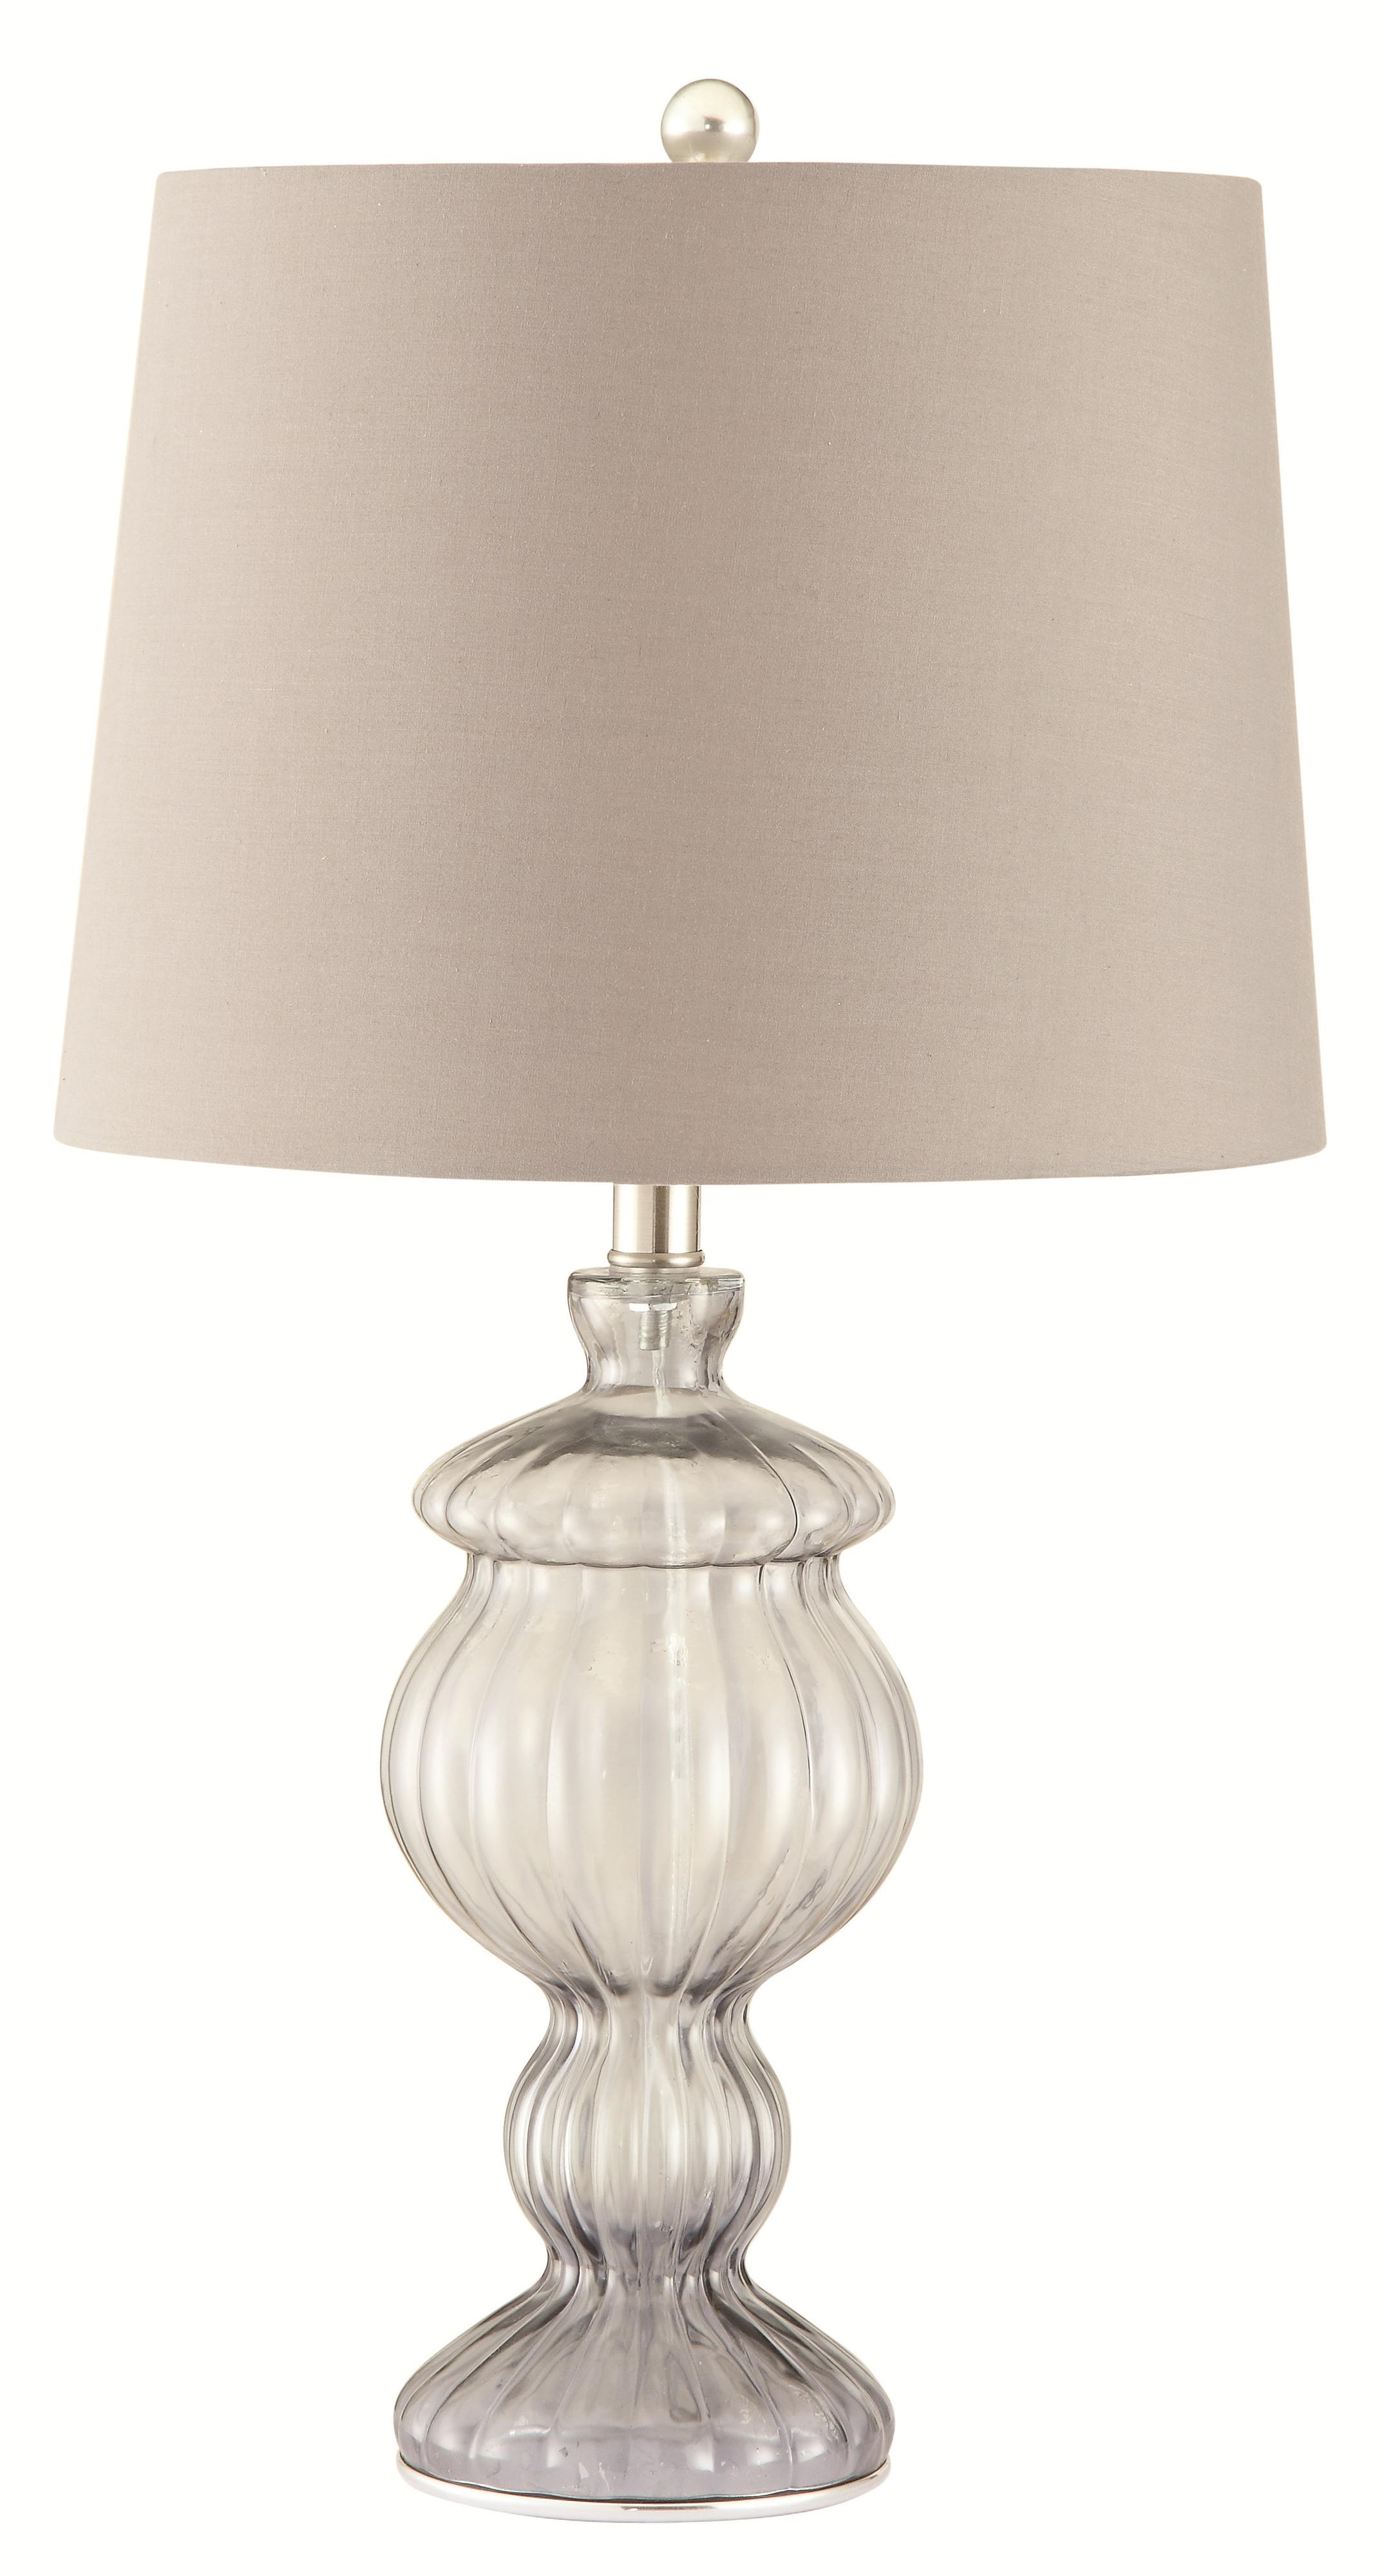 Coaster Table Lamps Table Lamp - Item Number: 901524